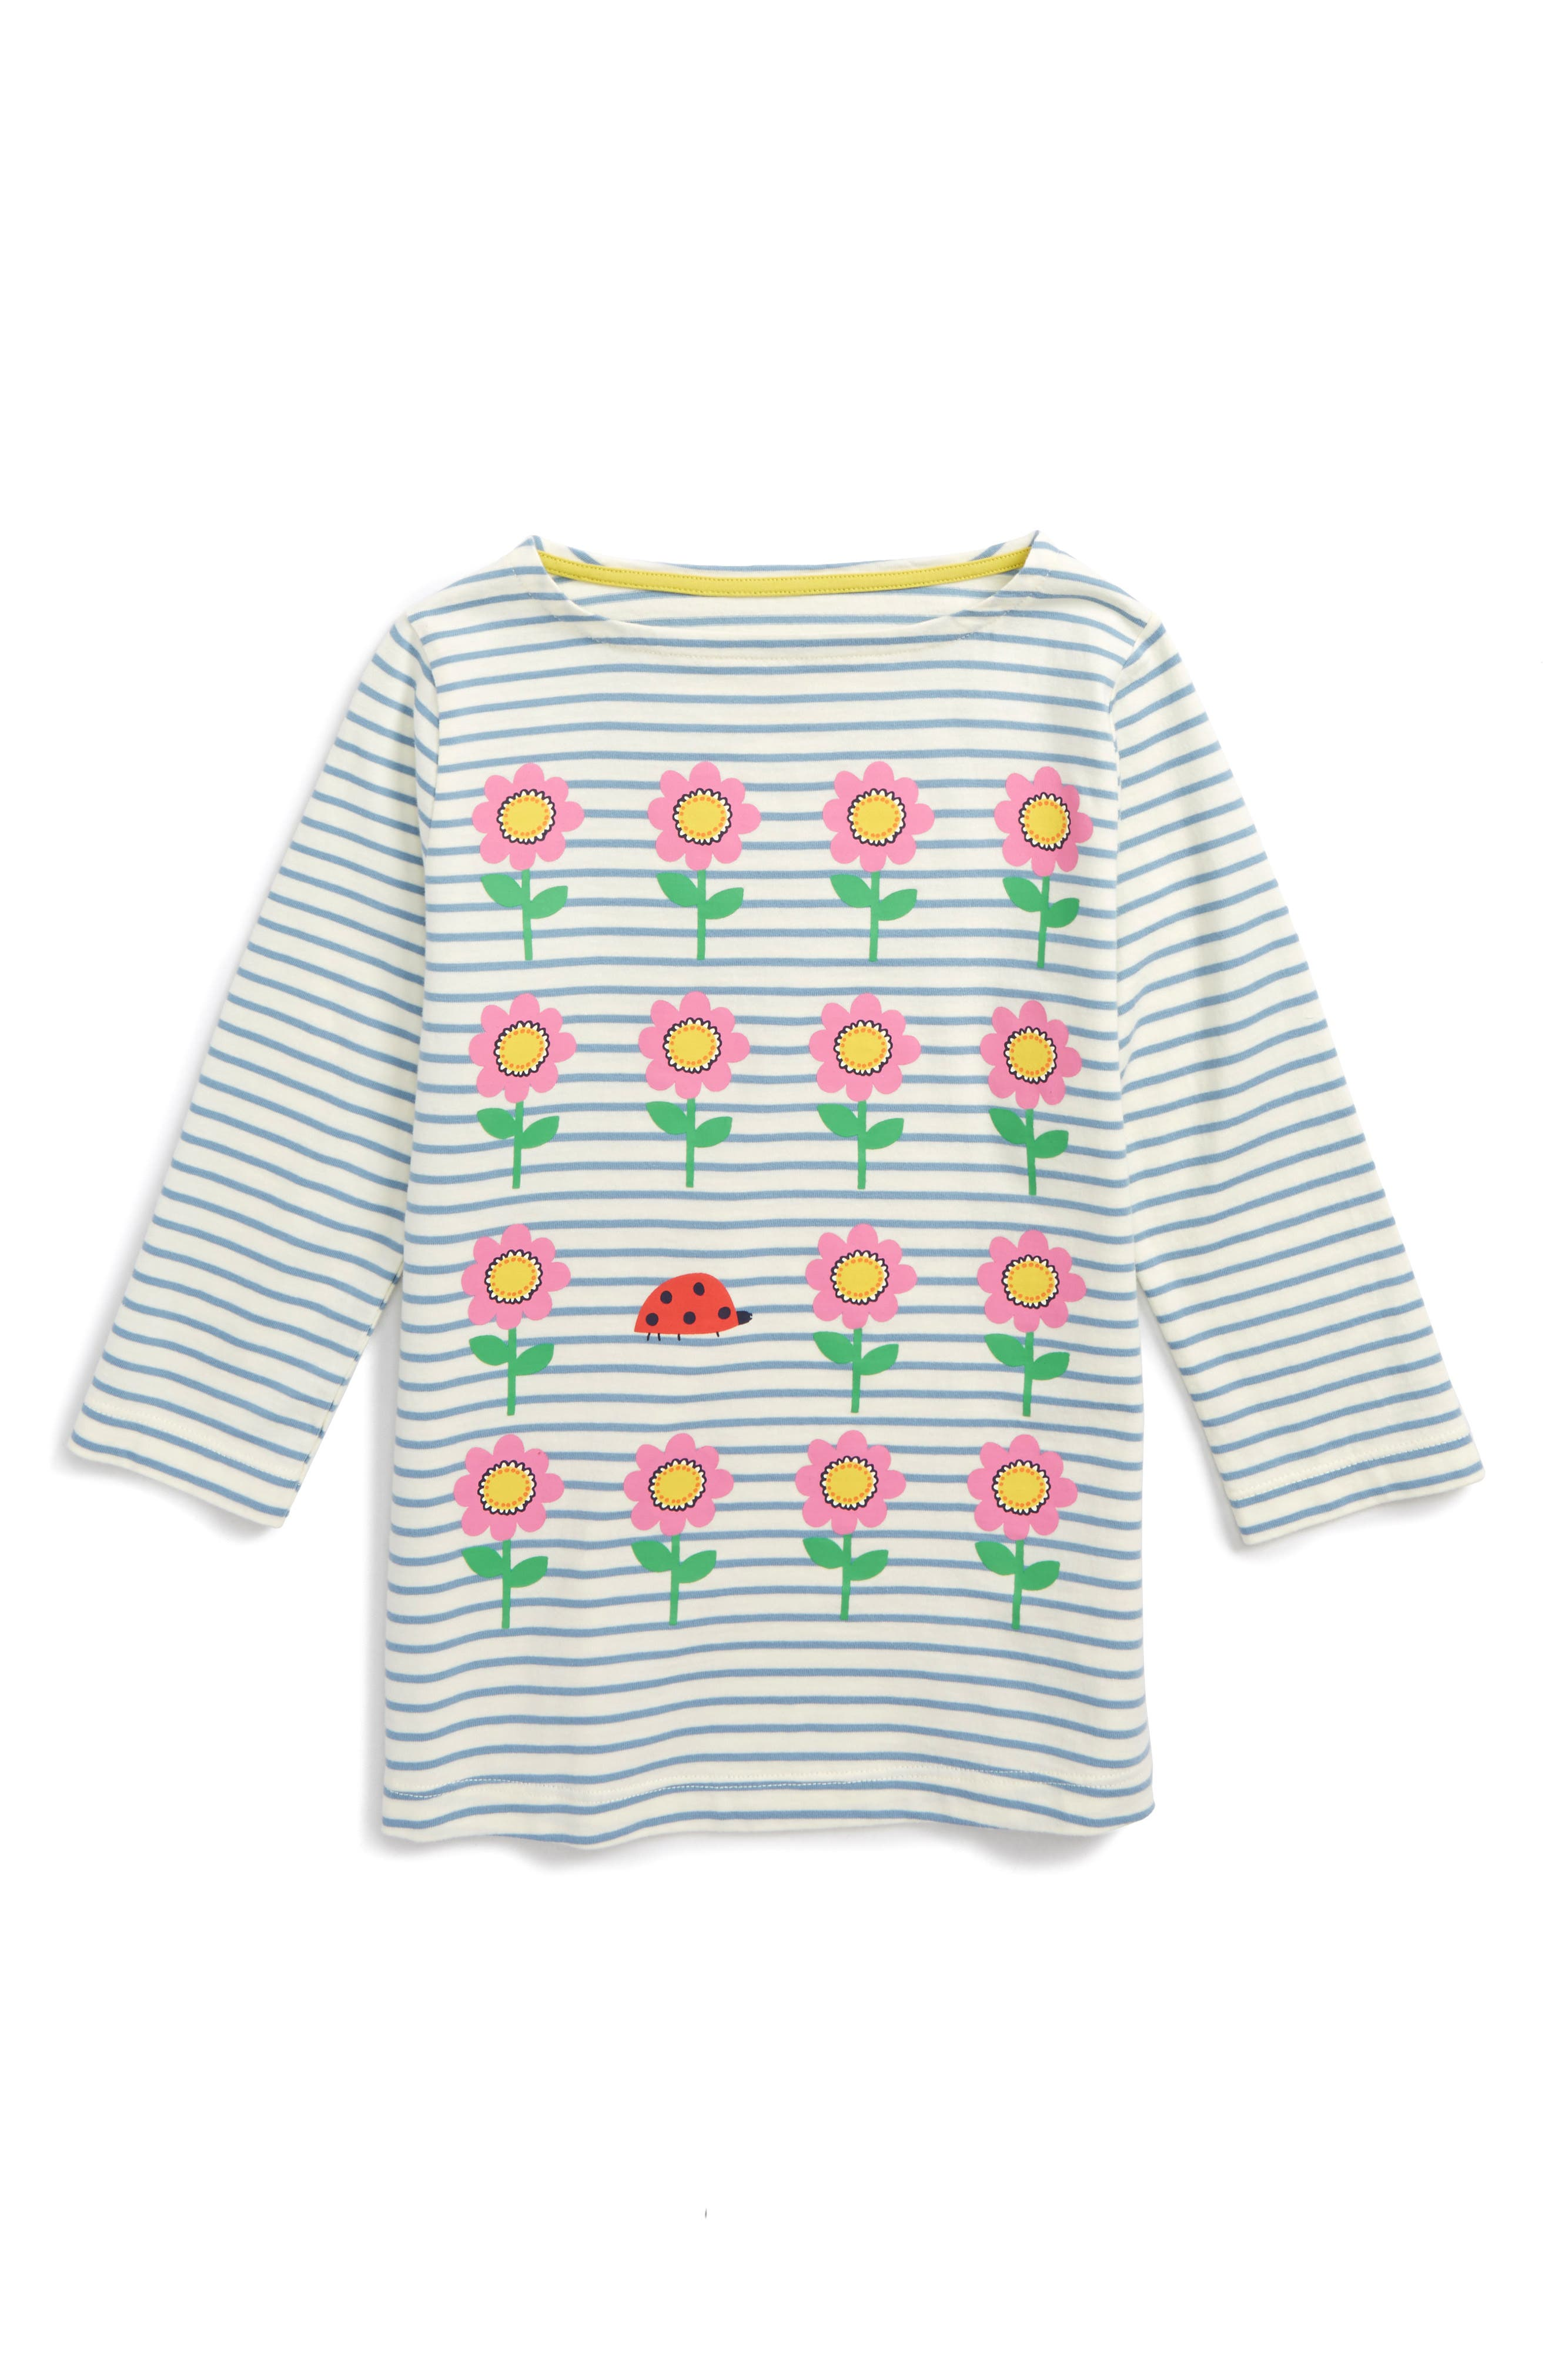 Mini Boden Odd One Out Graphic Tee (Toddler Girls, Little Girls & Big Girls)